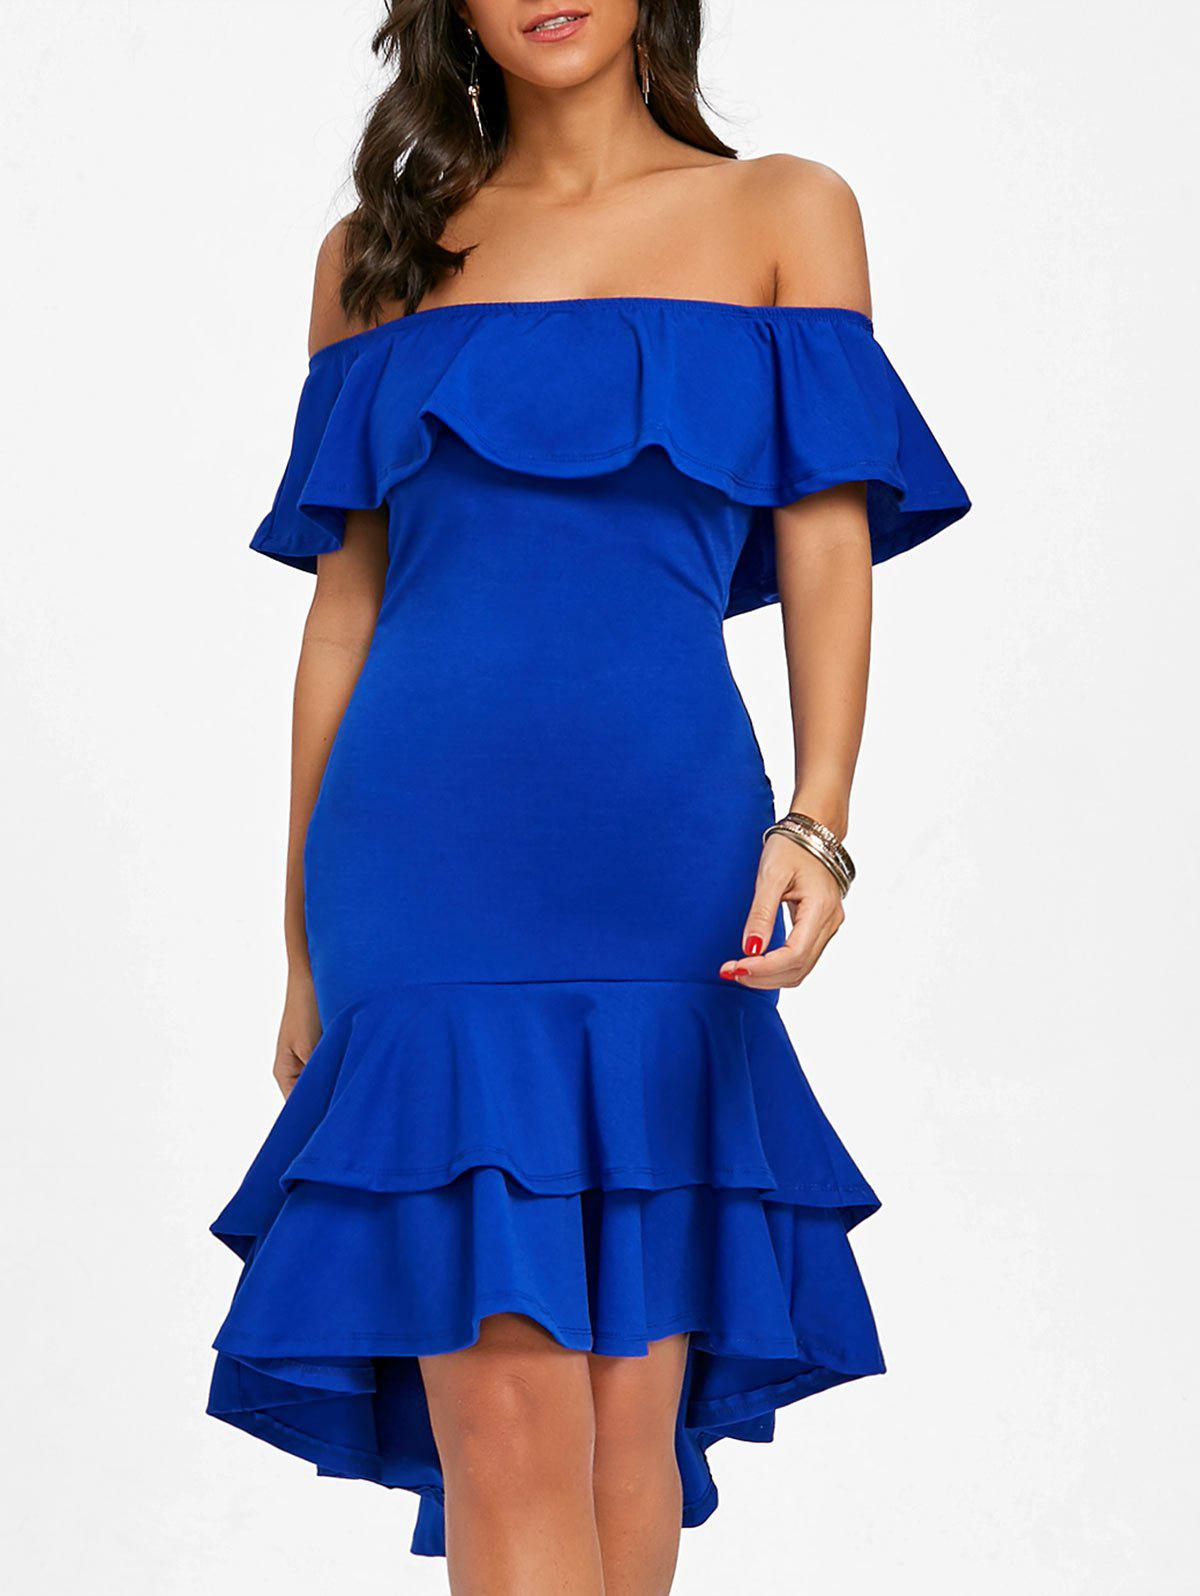 Off The Shoulder Ruffle Bodycon Dress - BLUE M